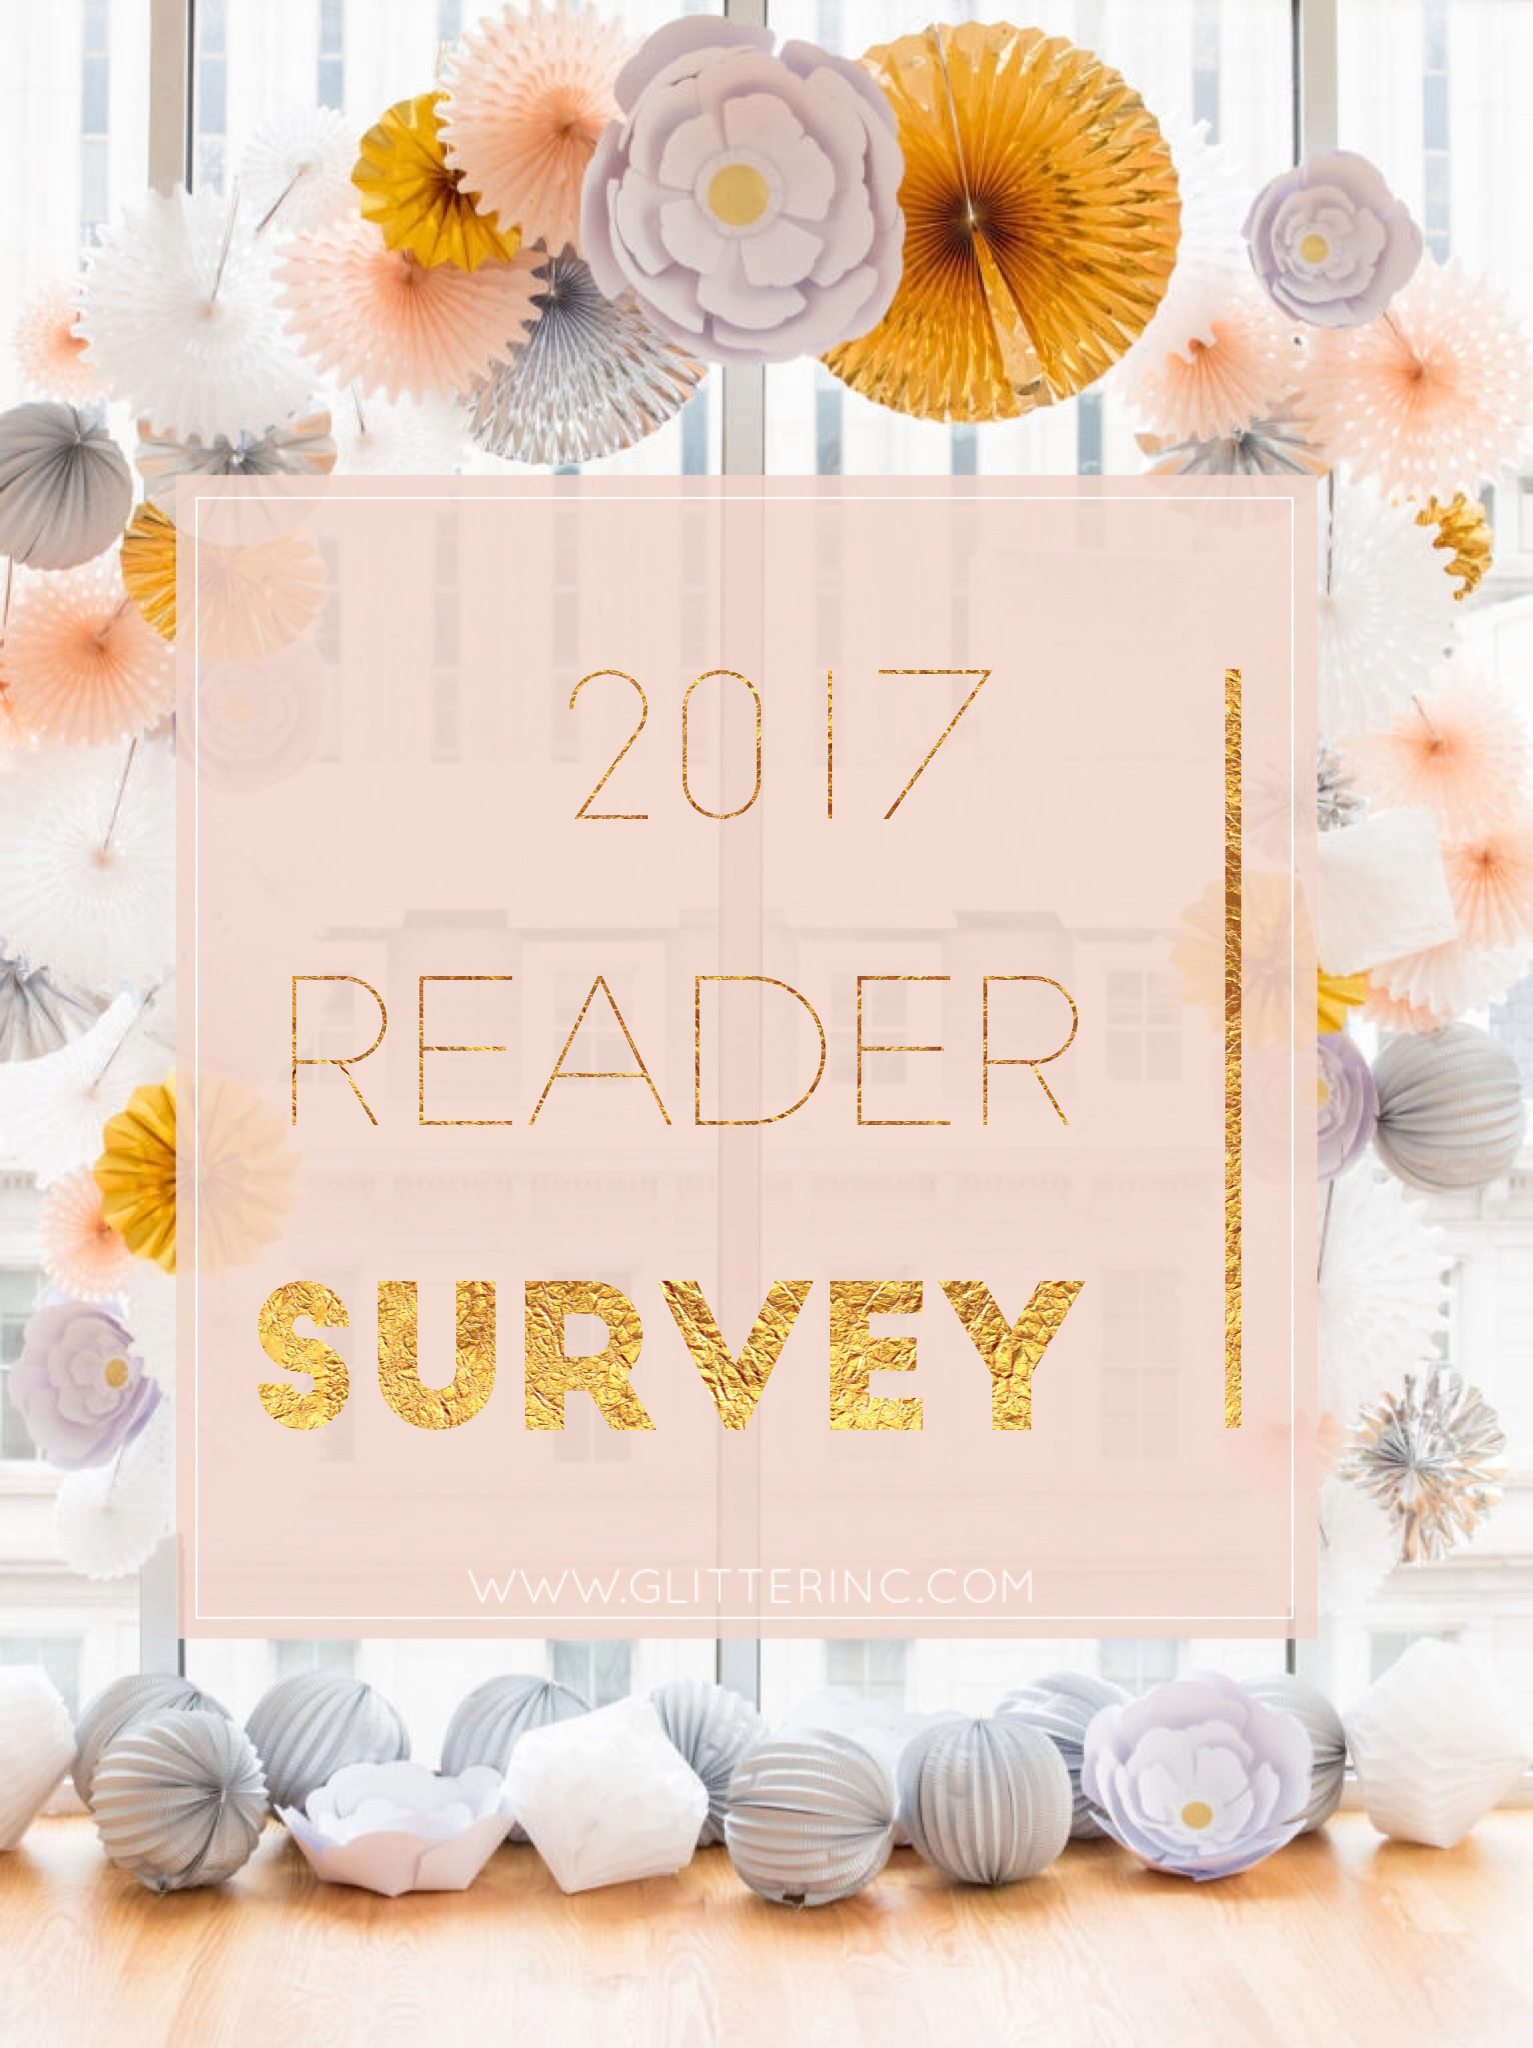 A new and improved Glitter, Inc. is in the works! Take the 2017 Reader Survey and be entered to win a $100 Nordstrom gift card. Click through for the details. | glitterinc.com | @glitterinc